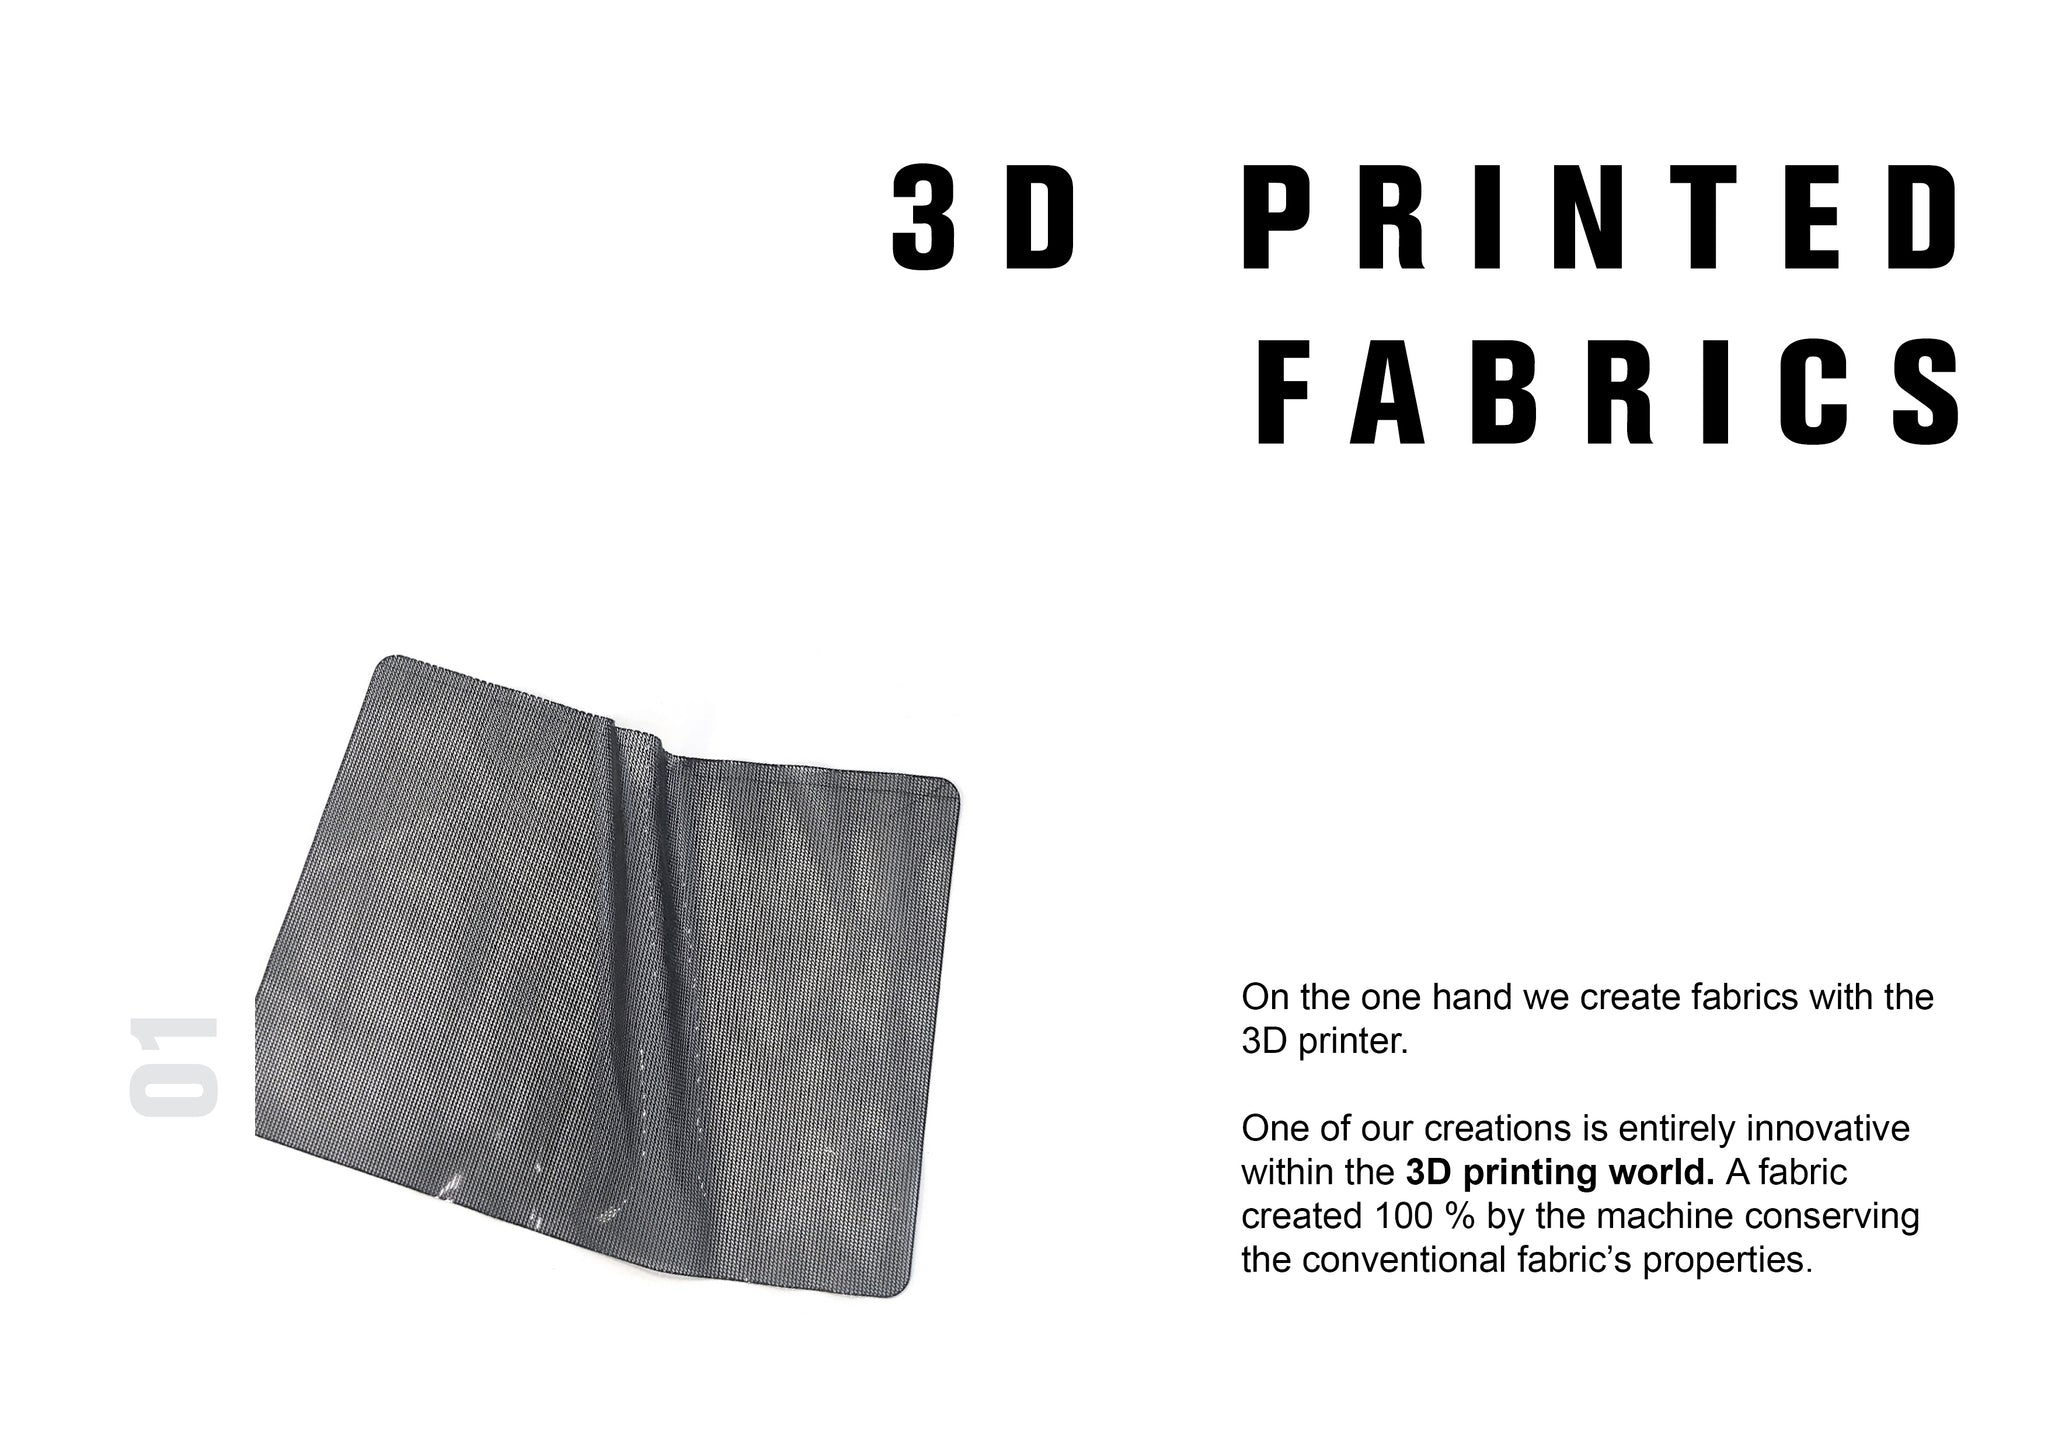 3D PRINTED FABRICS. New digital manufacturing techniques. 3D PRINTER.